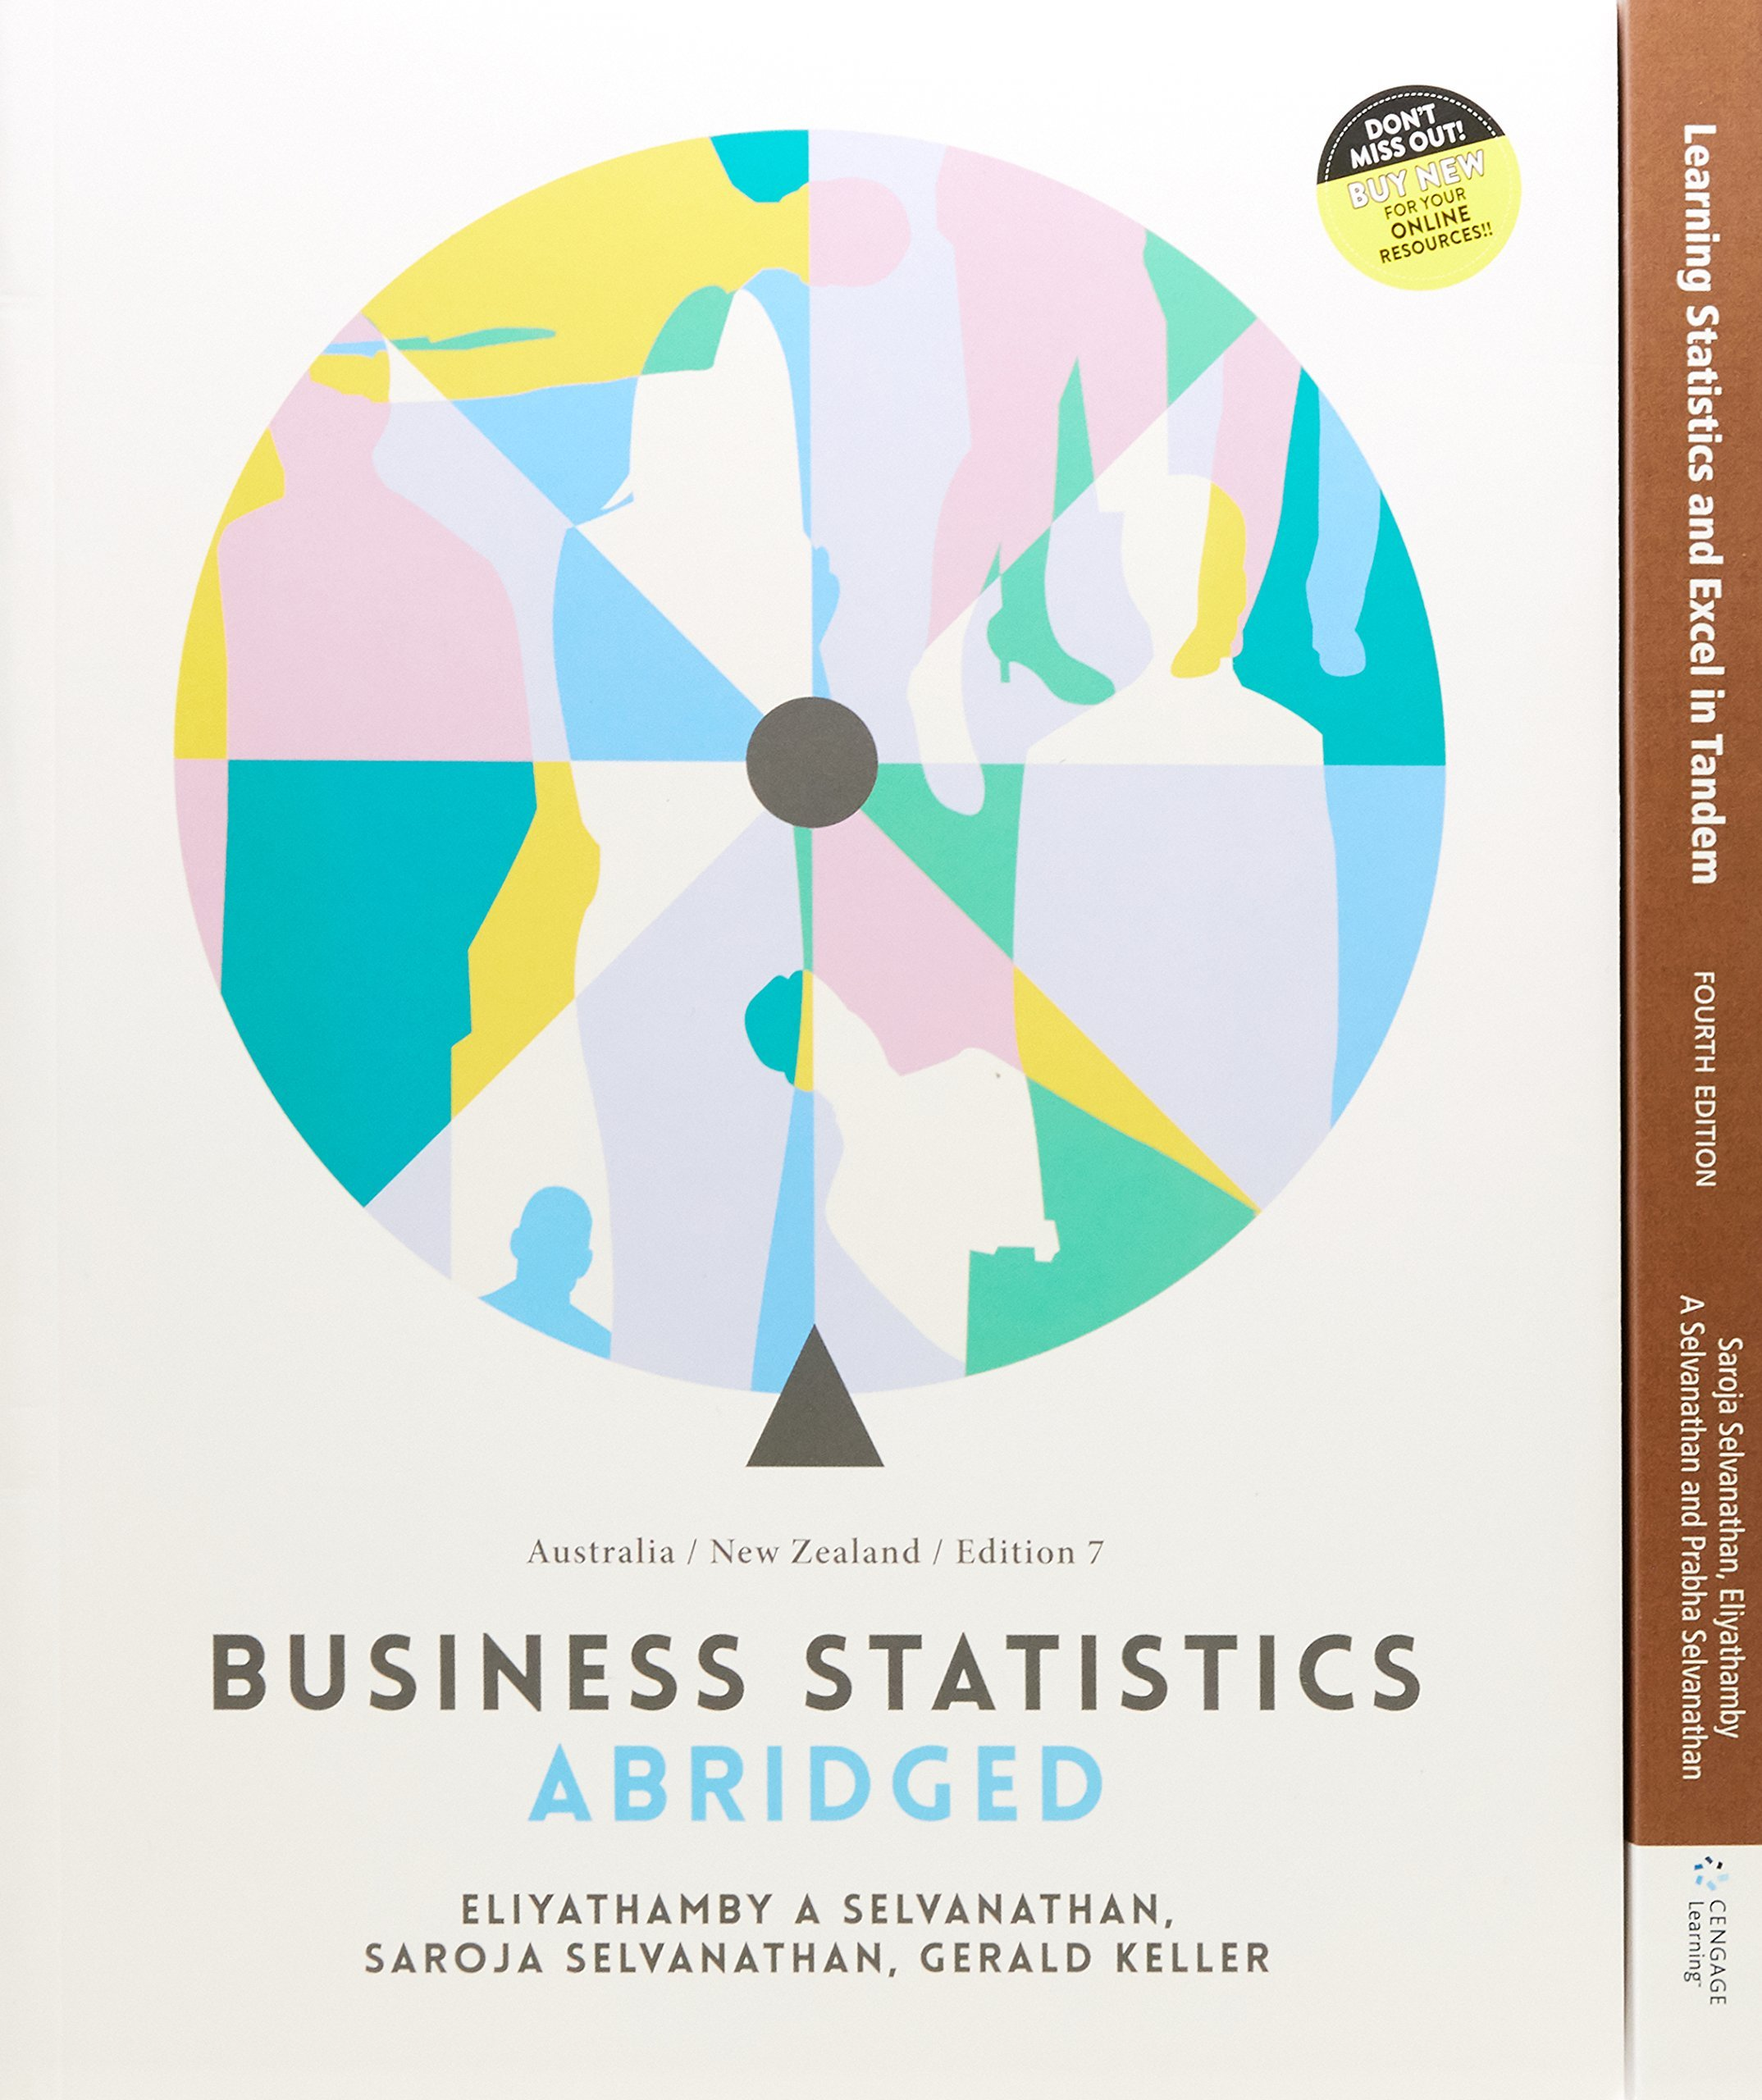 Bundle: Business Statistics Abridged: Australia NeZ with Student Resource Access for 12 Months + PP0952 - Learning Statistics and EXCEL in Tandem